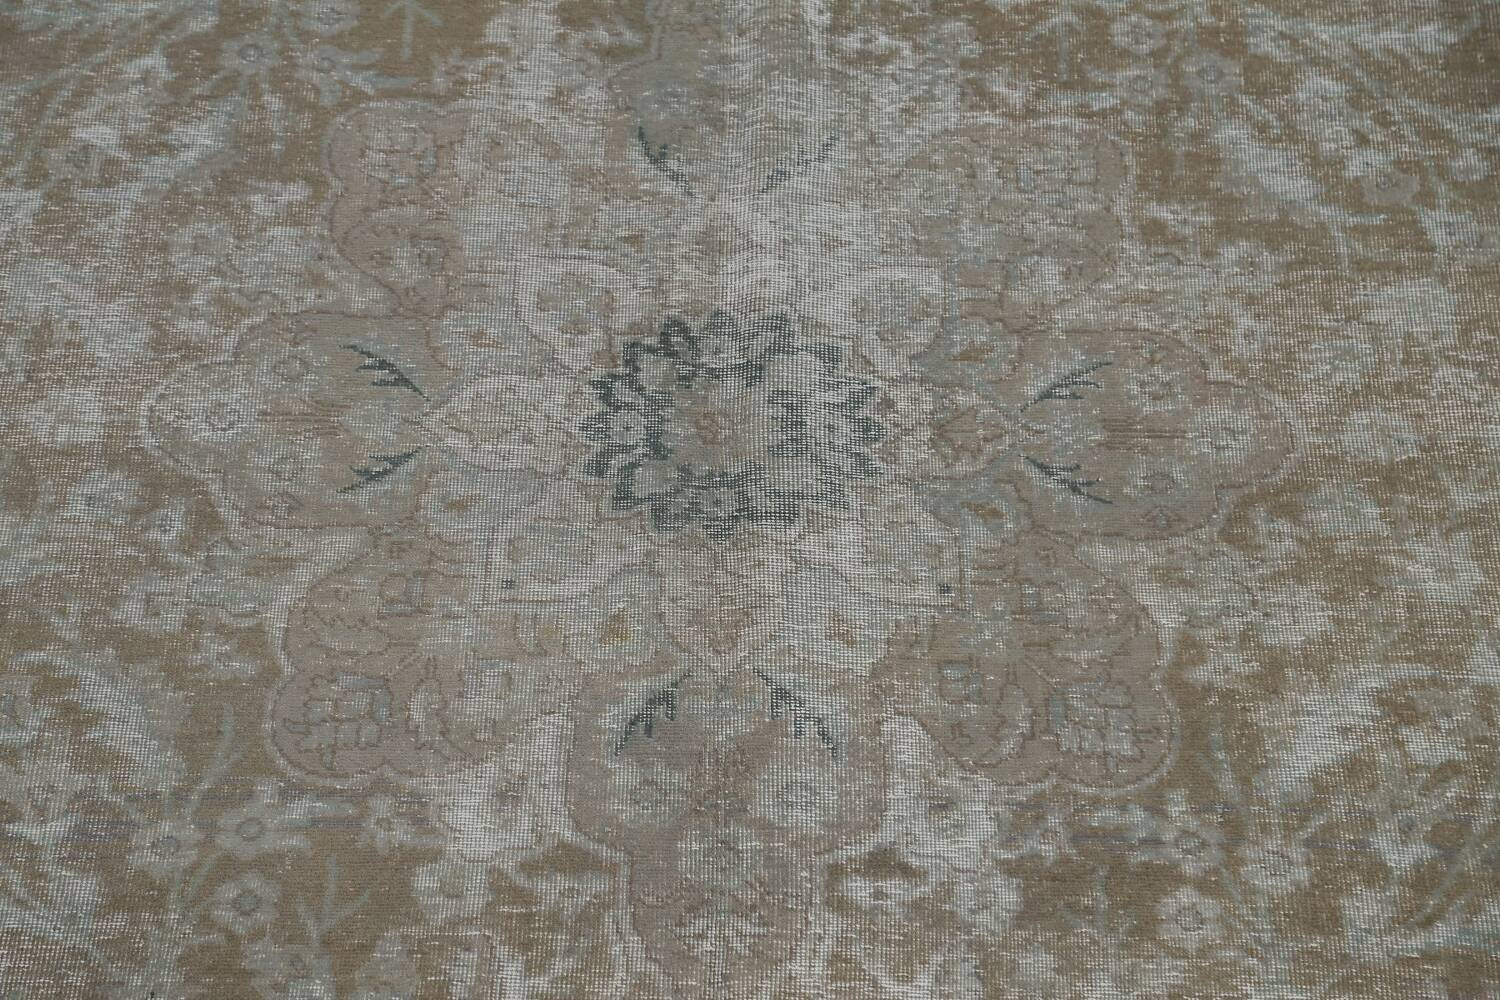 Muted Distressed Tabriz Persian Area Rug 10x13 image 4